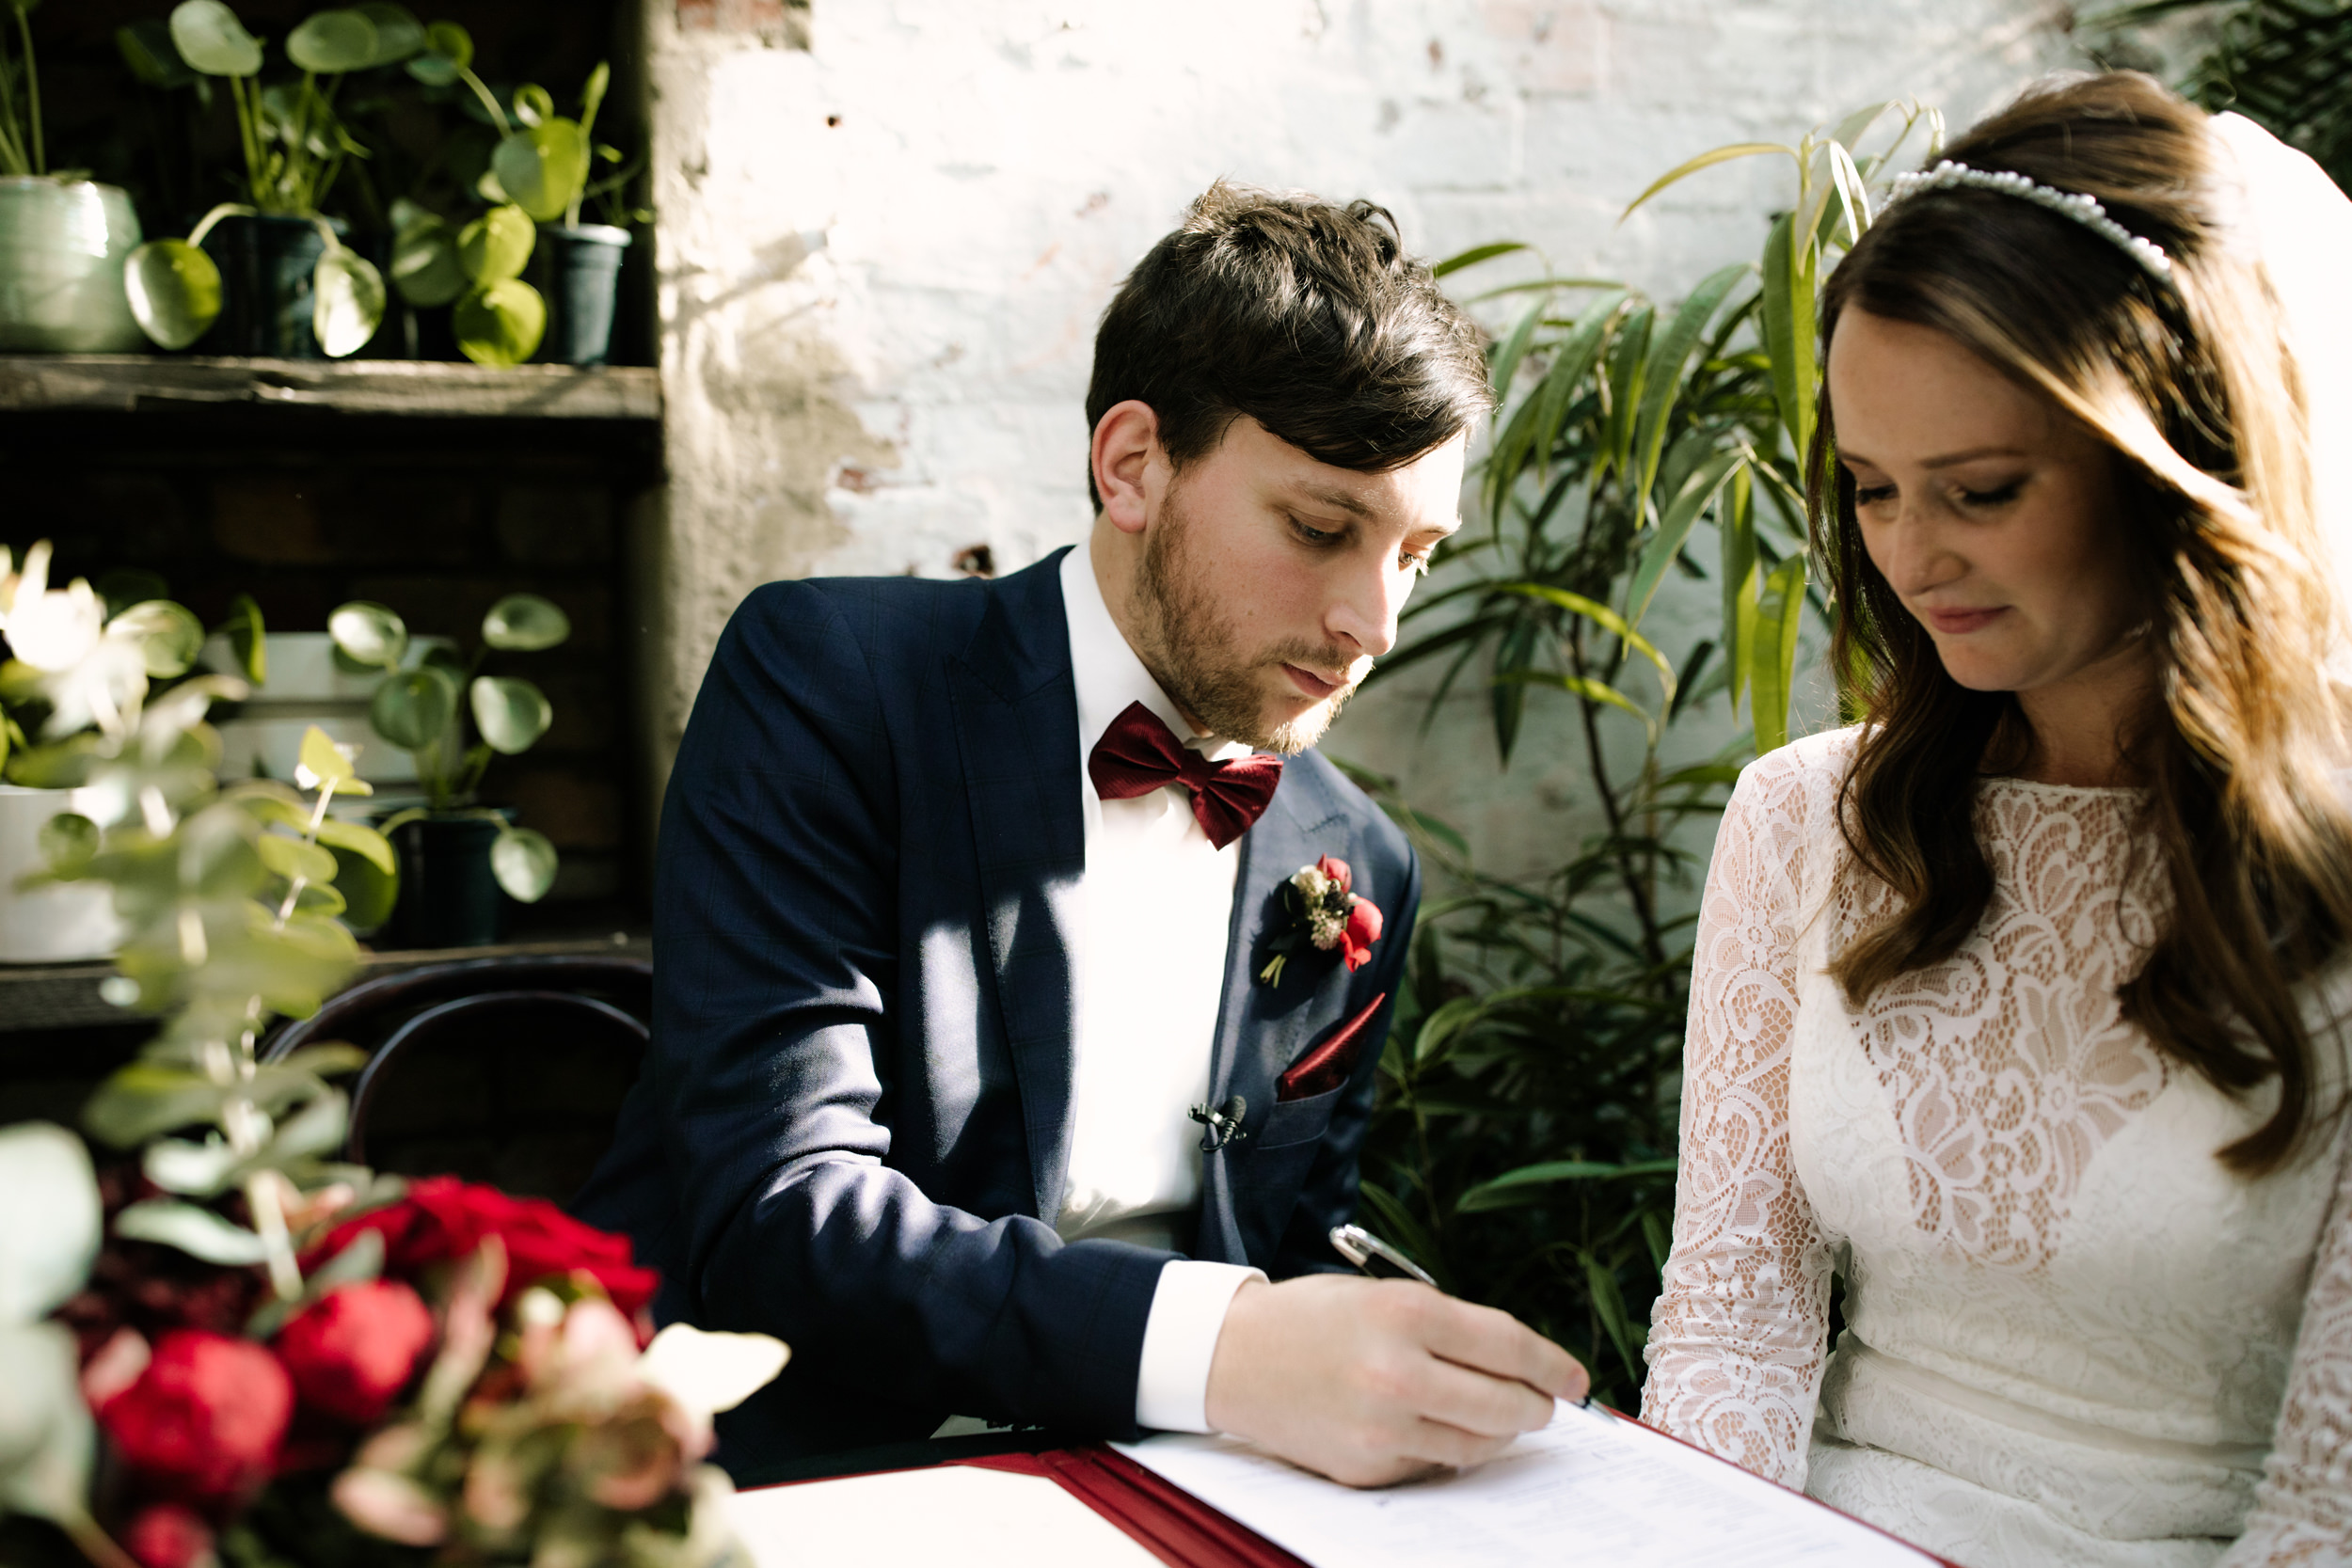 I_Got_You_Babe_Weddings_Emily_Matt_Rupert_Glasshaus_Melbourne0081.JPG